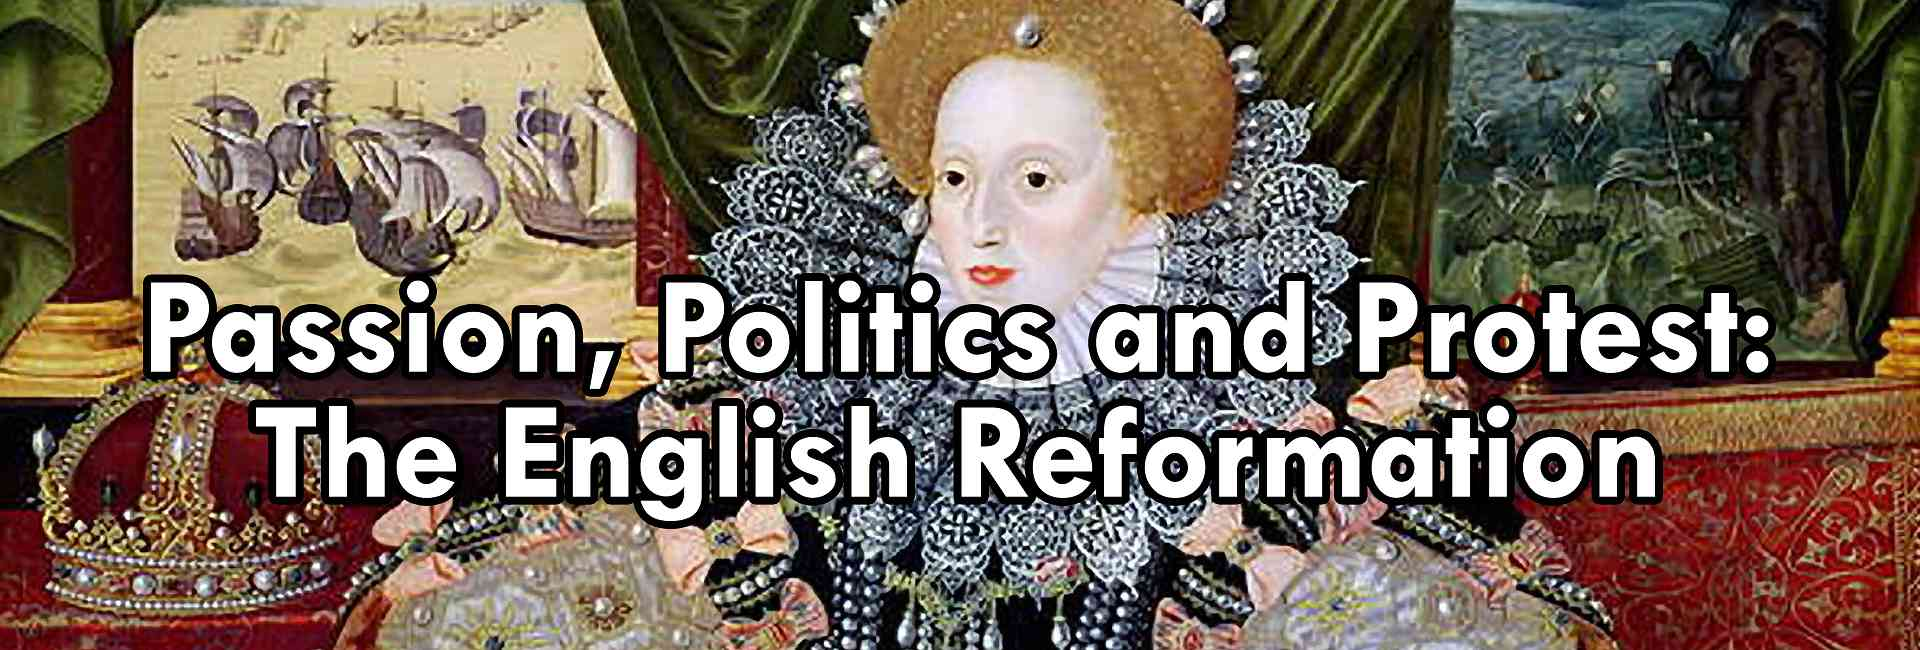 Passion, Politics and Protest The English Reformation